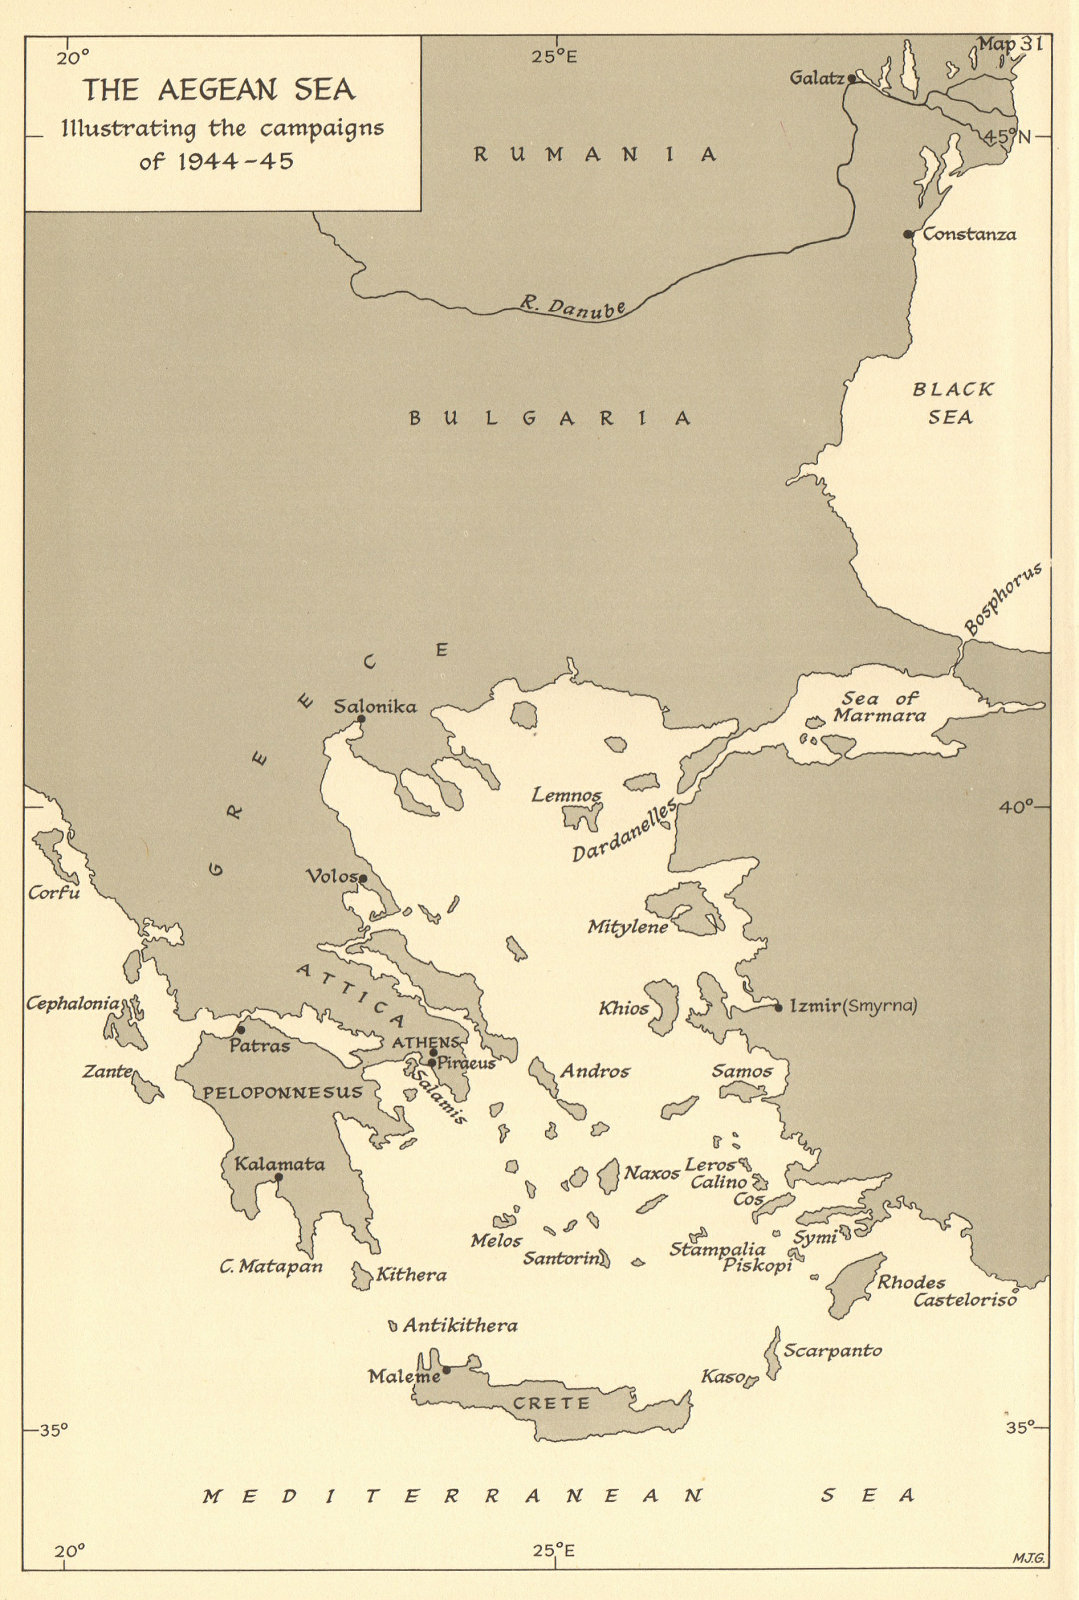 Associate Product Aegean Sea illustrating the naval campaigns of 1944-45. World War 2 1961 map